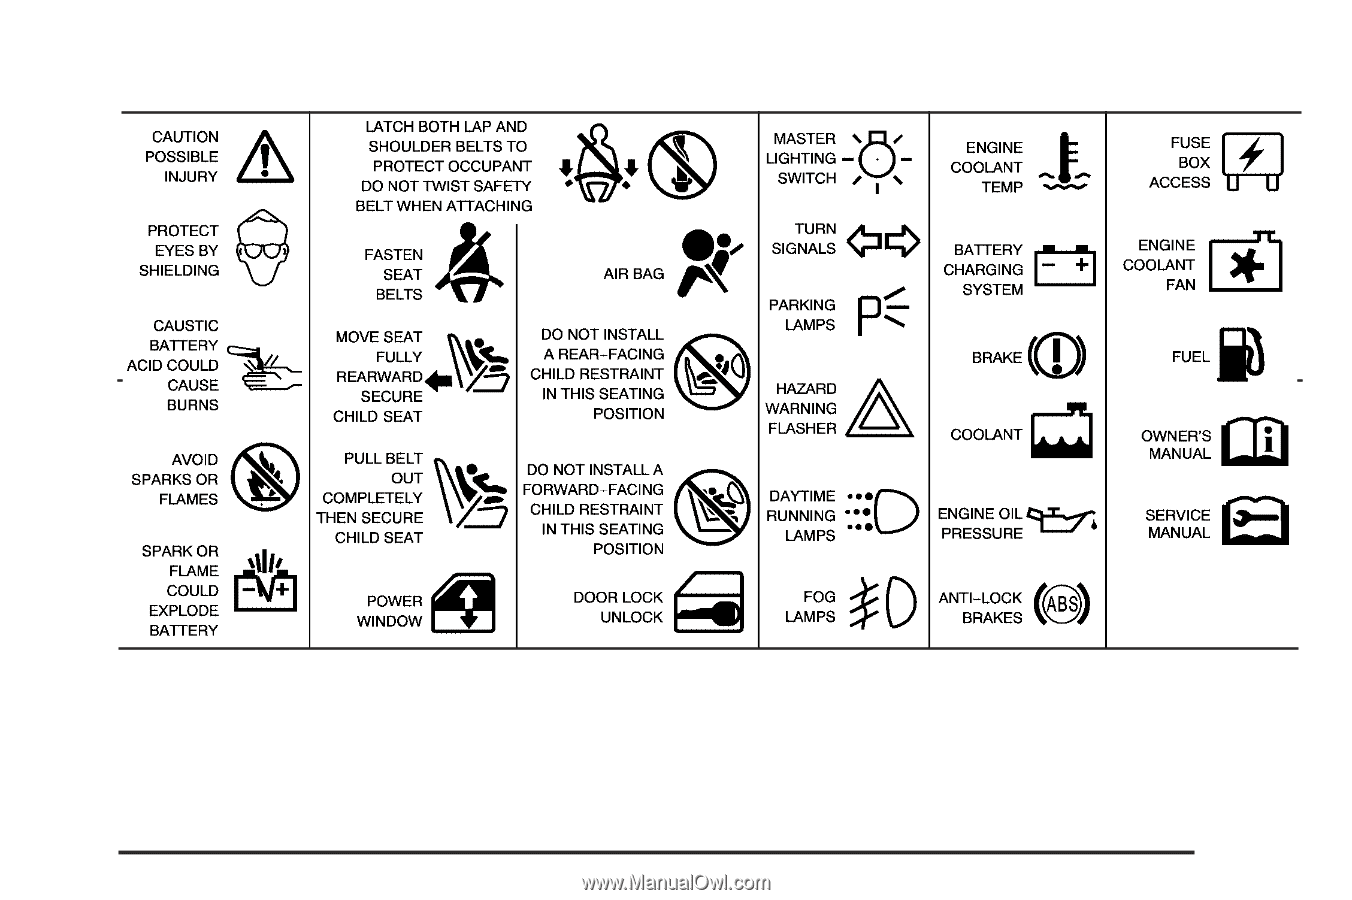 These Are Some Examples Of Symbols That May Be Found On The Vehicle